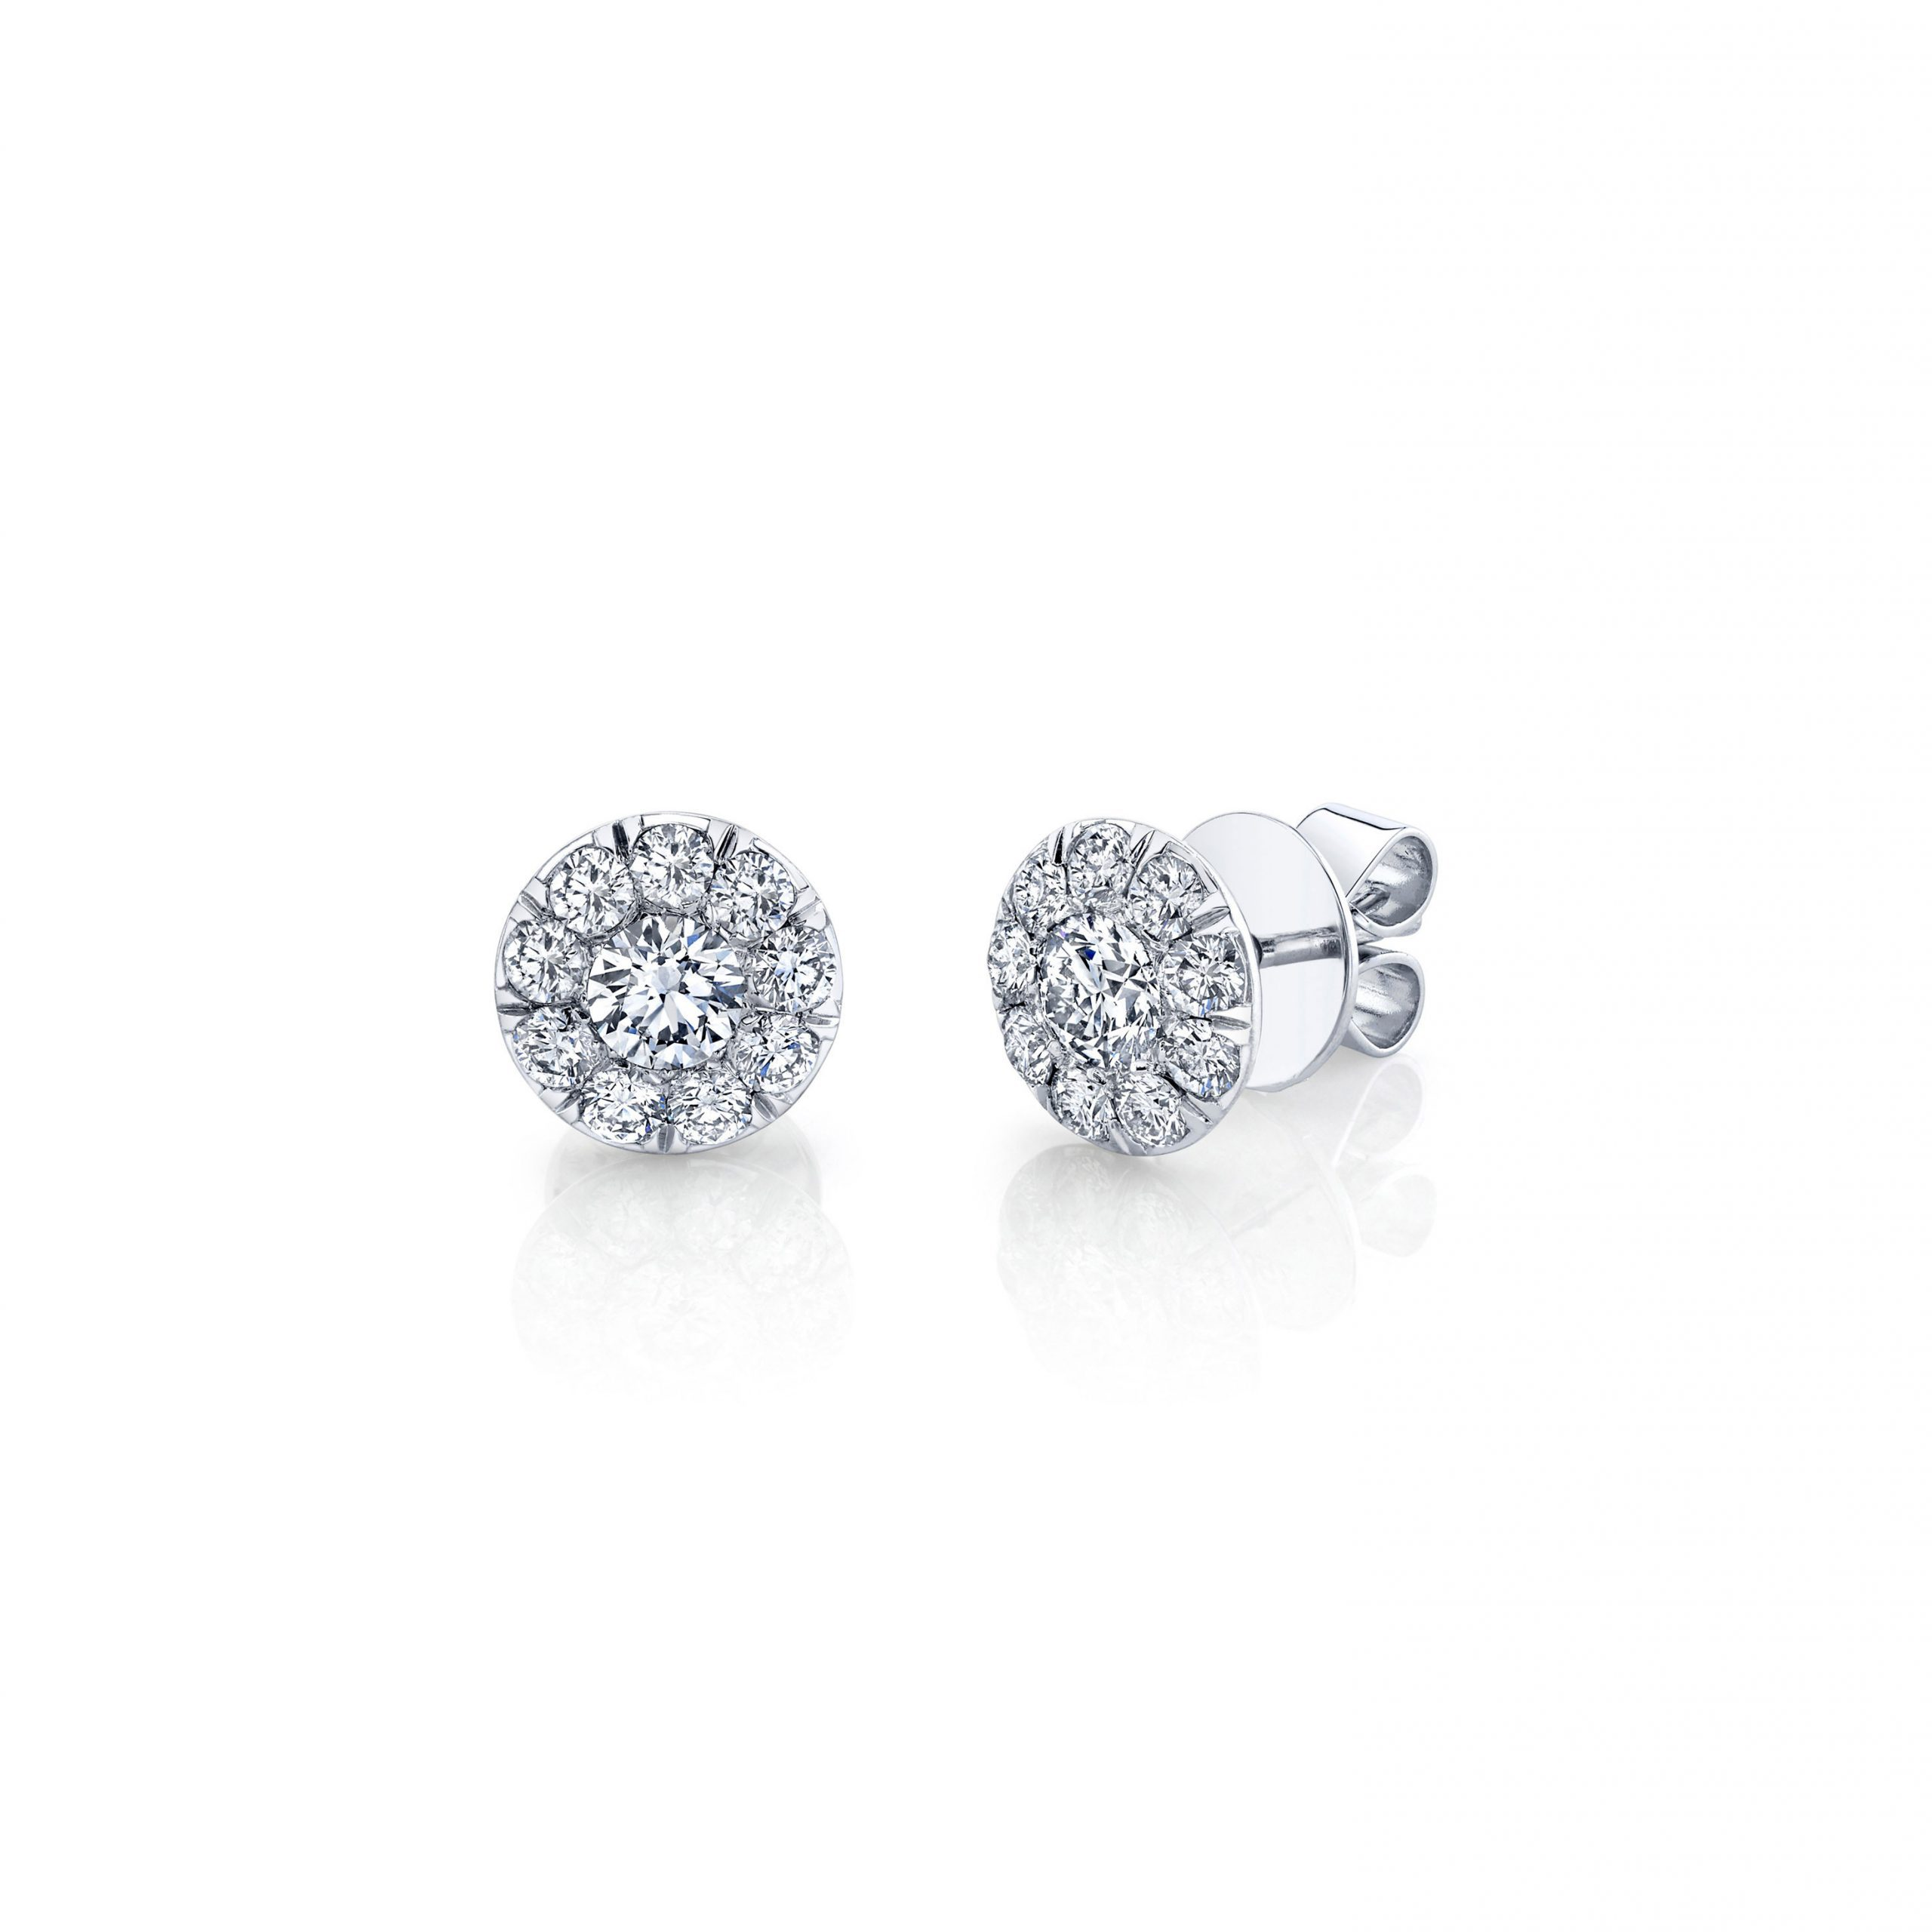 Lucile Round Brilliant Seamless Solitaire® Diamond Stud Earrings in 18k White Gold Side View by Oui by Jean Dousset